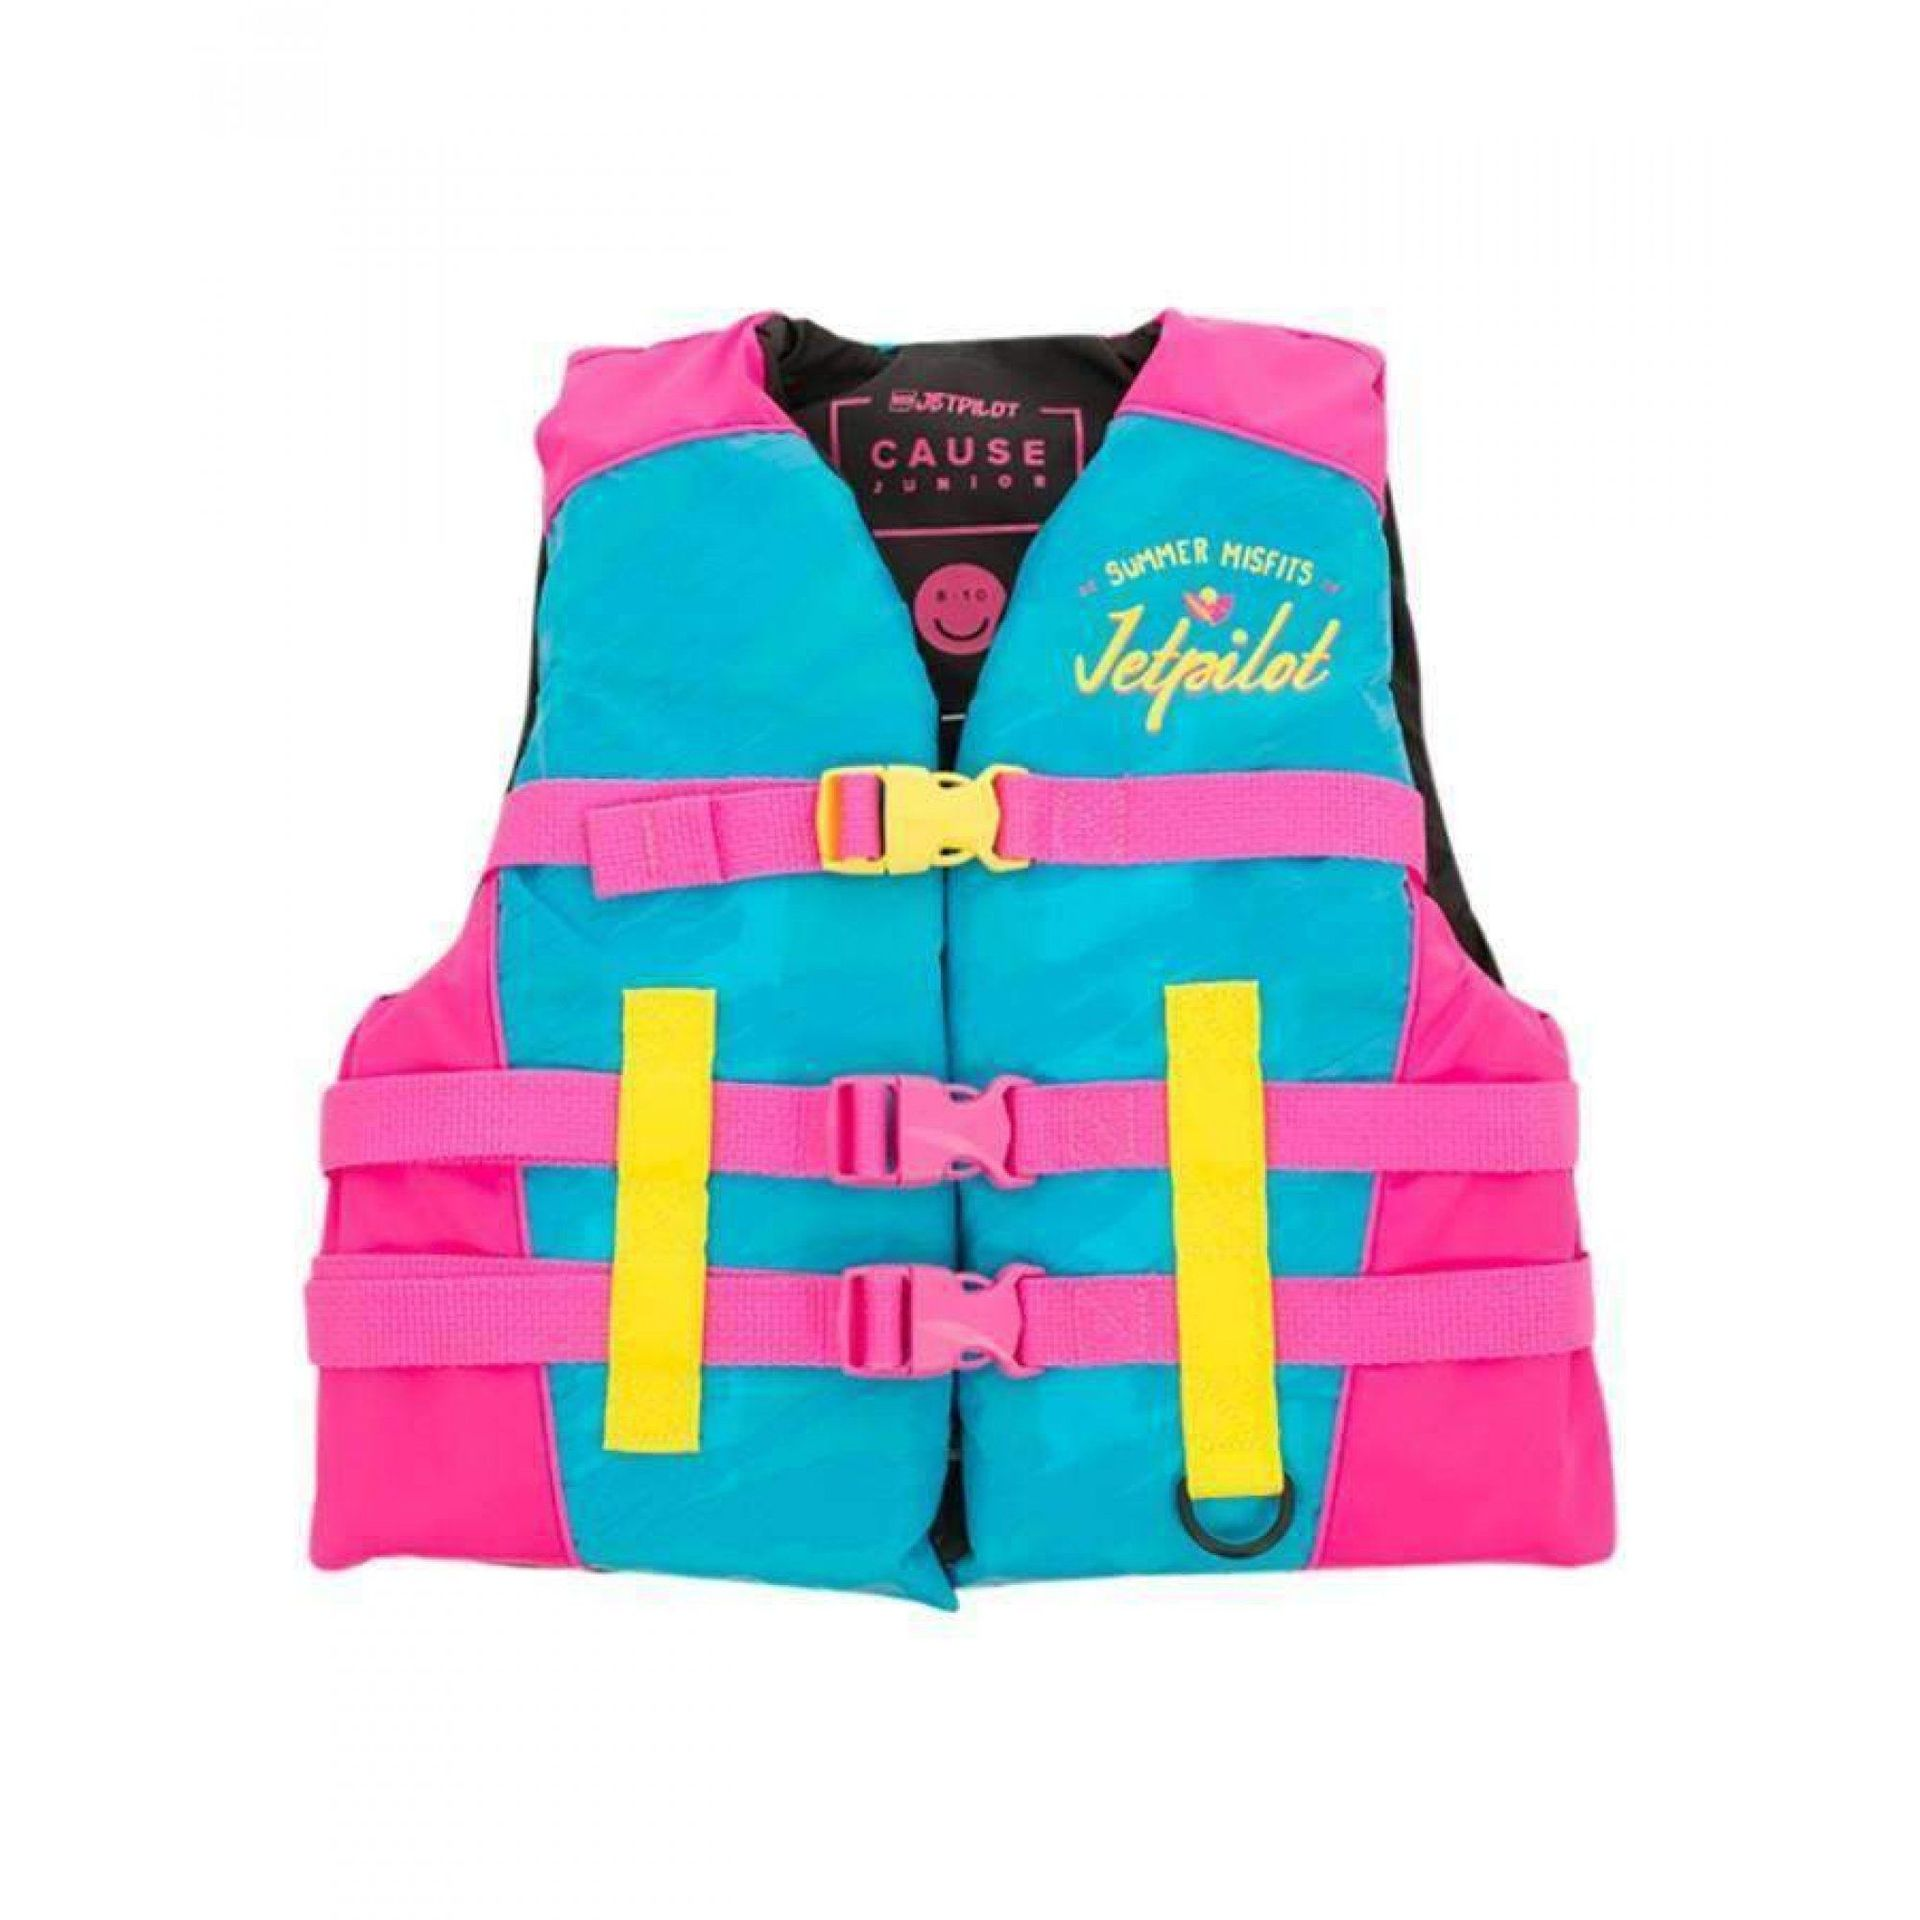 KAMIZELKA JET PILOT CAUSE YOUTH|TEEN NYLON 50N BLUE|PINK 19085 1